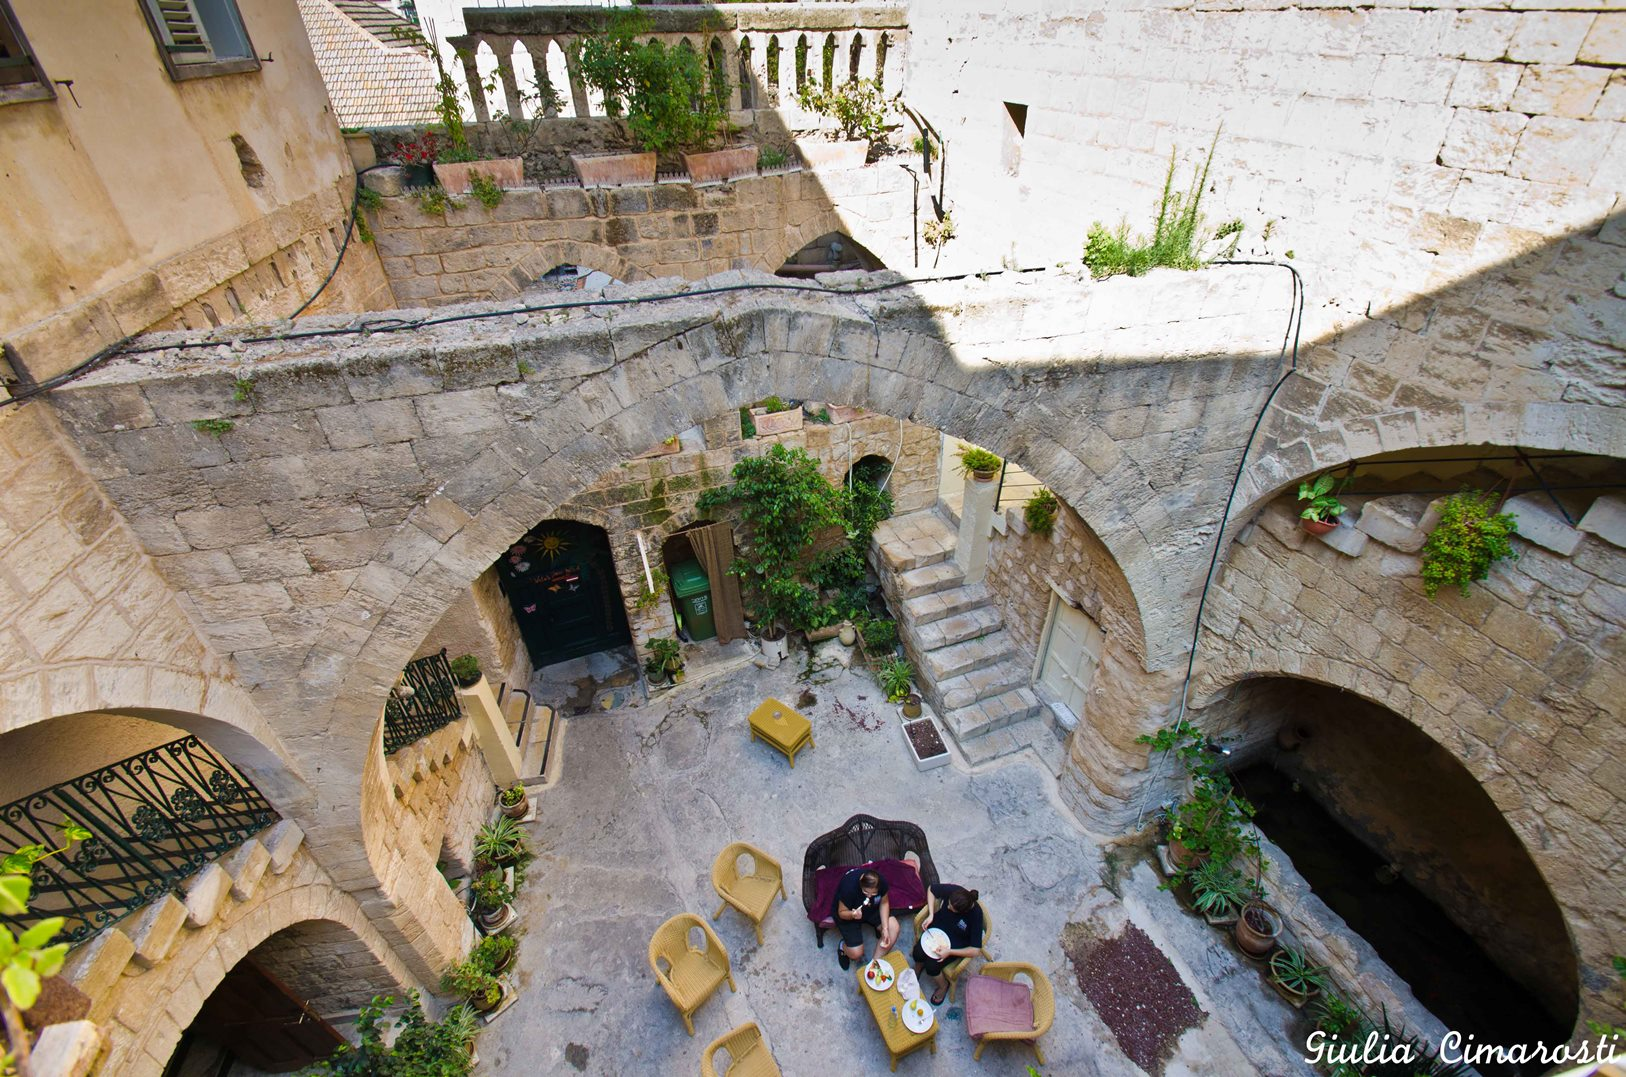 Overview of Fauzi Azar Inn, Nazareth. Photo by Giulia Cimarosti/TravelReportage.com